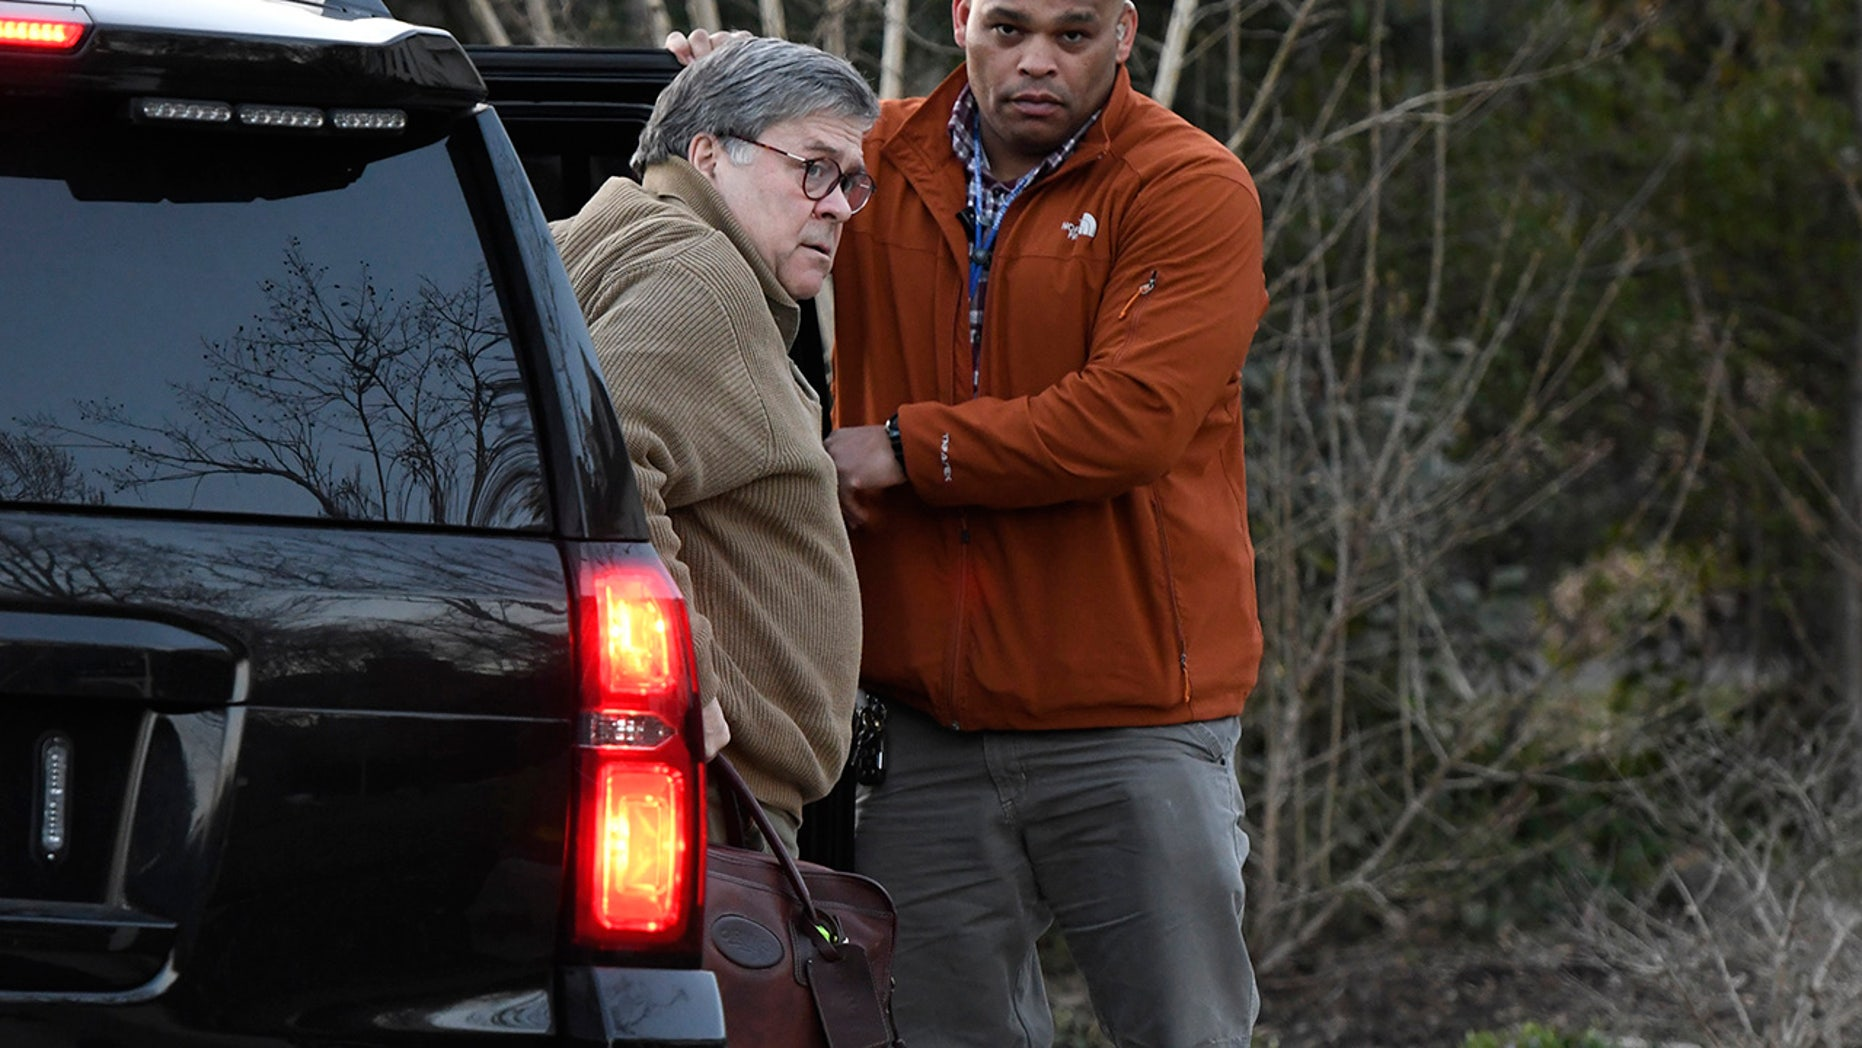 U.S. Attorney General William Barr, left, arrives at his home in McLean, Va., on Saturday evening, March 23, 2019. Barr will decide how much of Special Counsel Robert Mueller's Russia investigation report will be released to Congress and the public. (Associated Press)